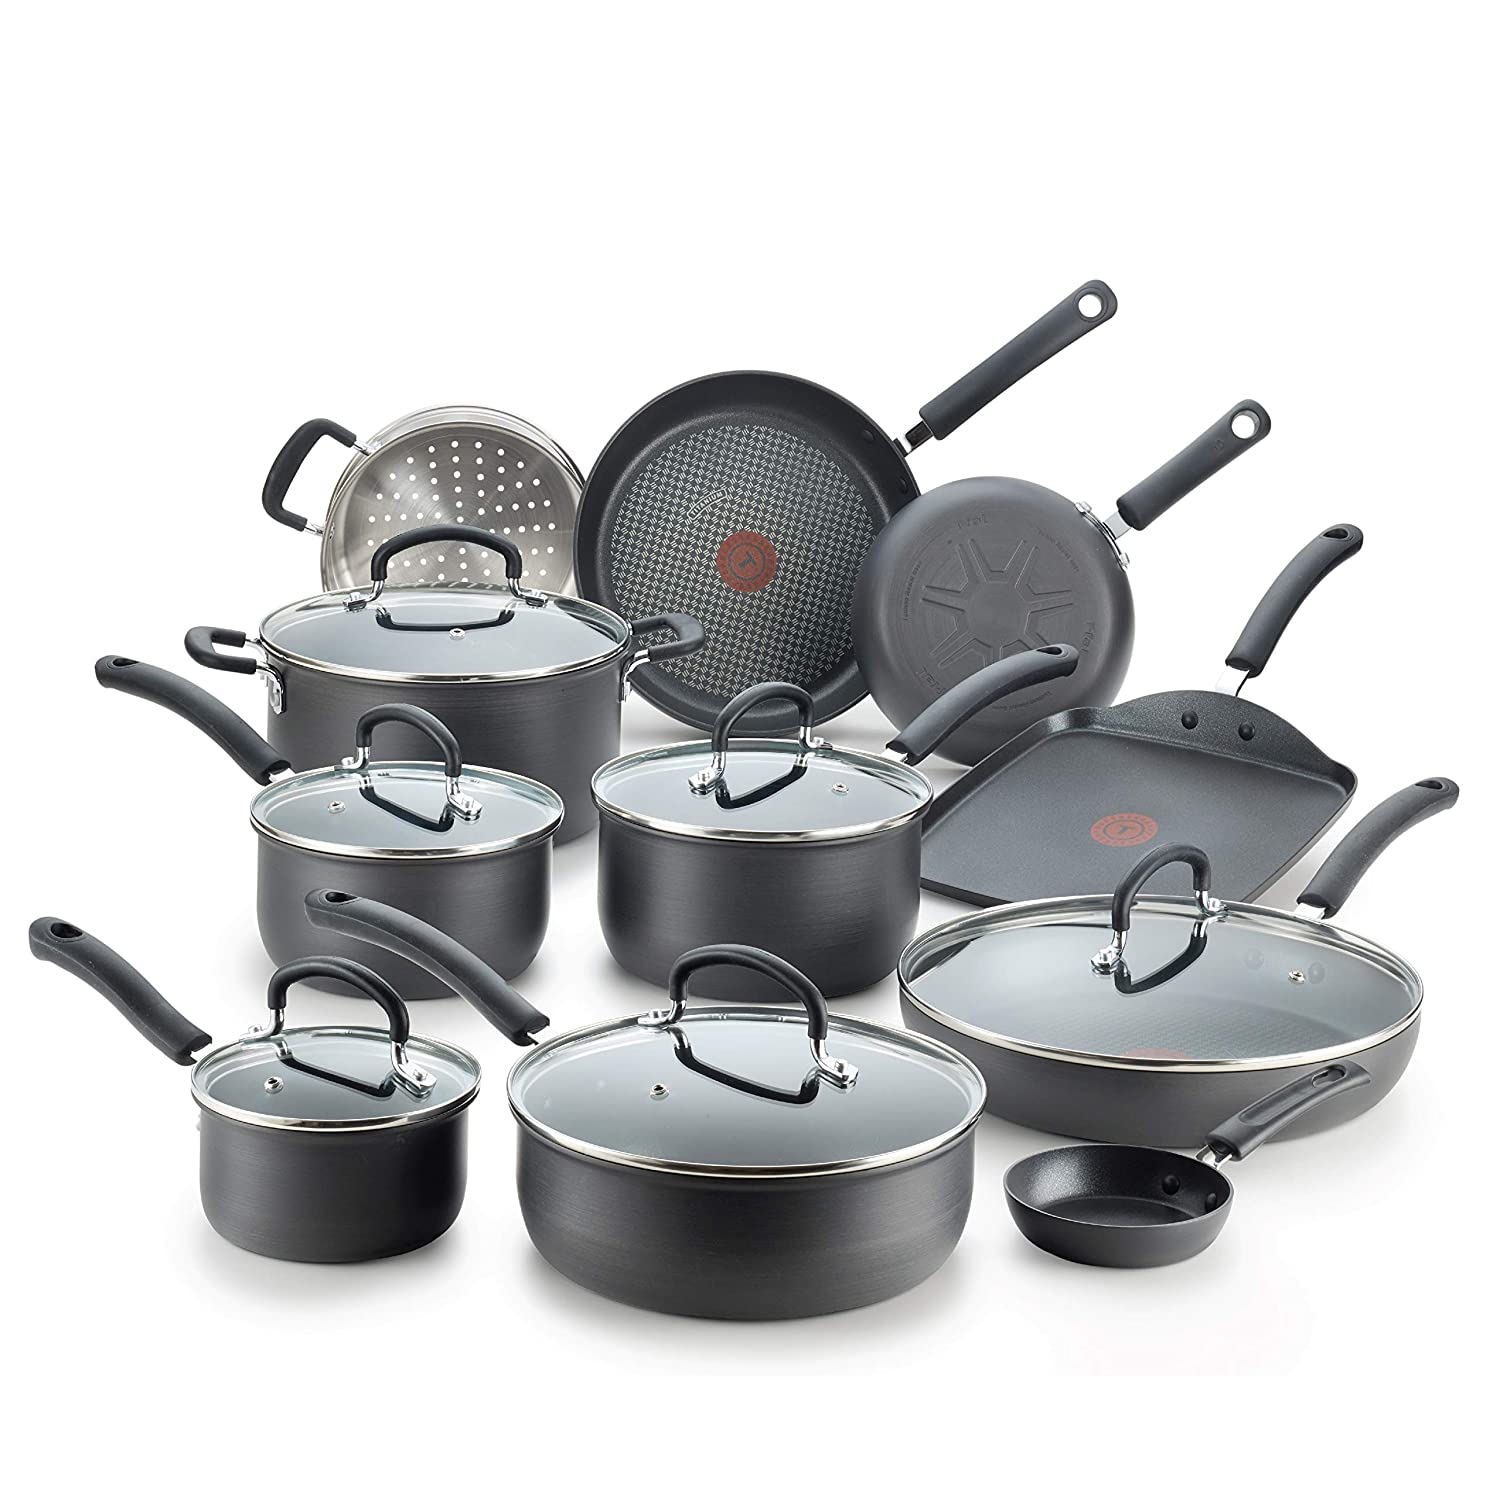 Top 10 Best Induction Cookware (2020 Reviews & Buying Guide) 1